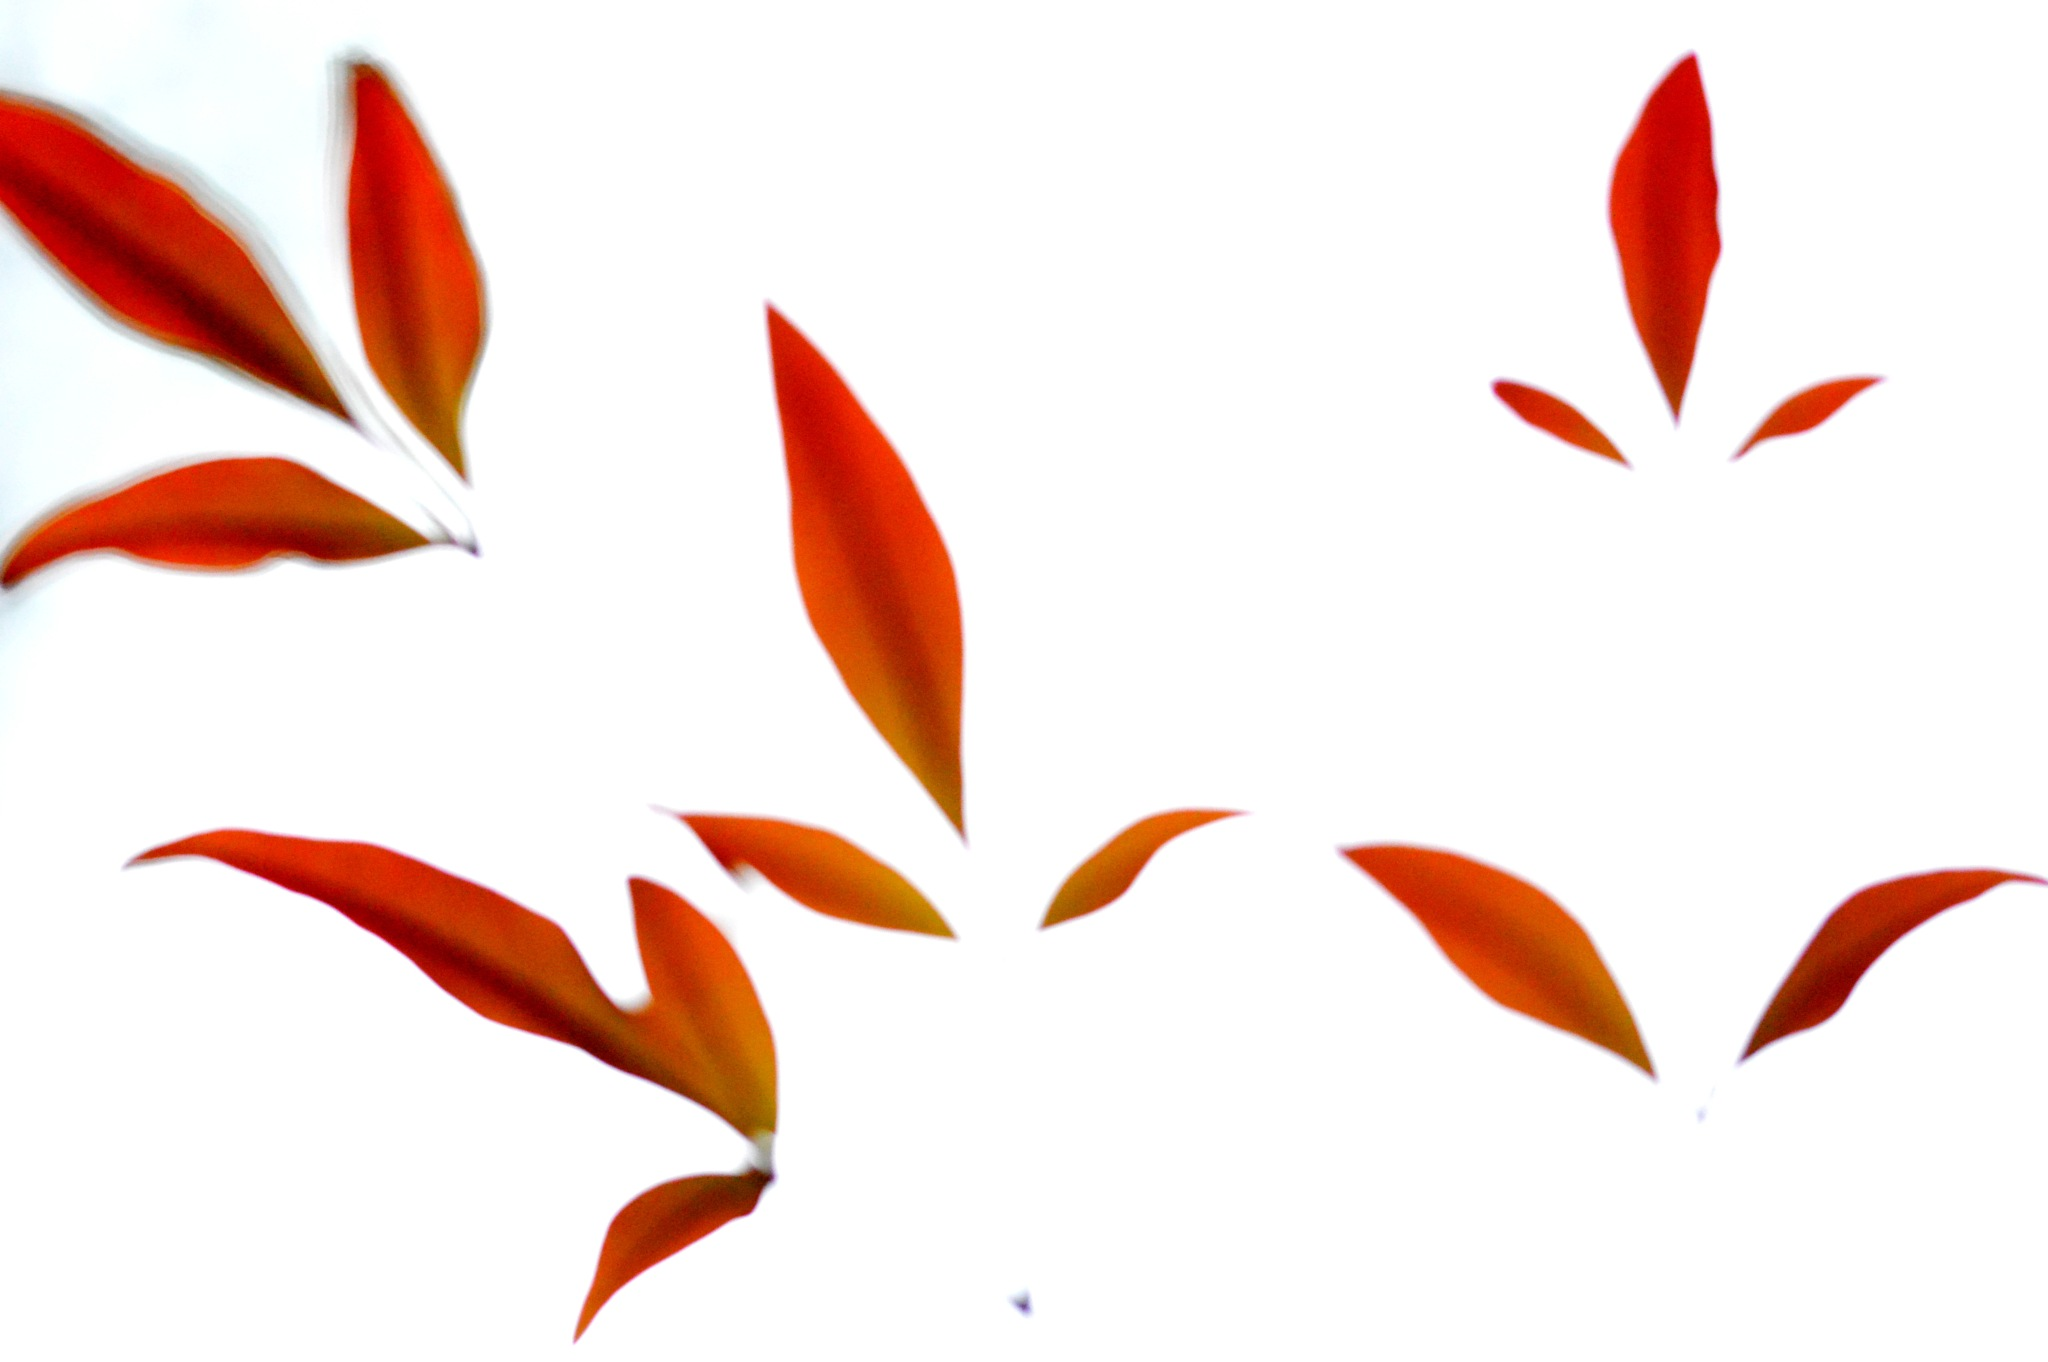 leaves in the sky by lorena.rinaudo.9